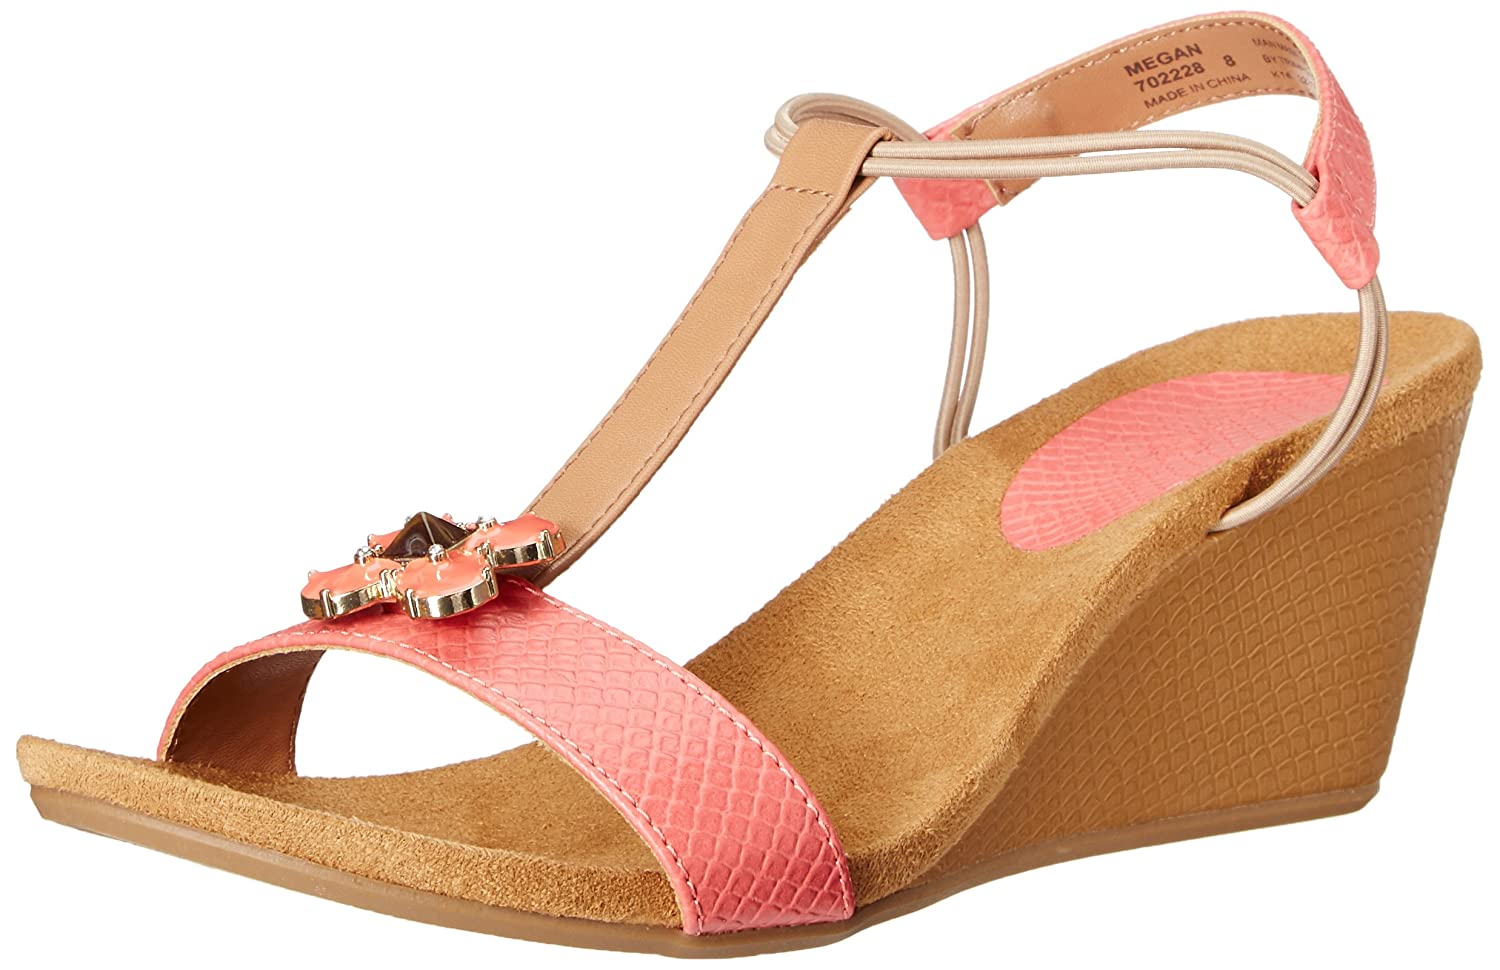 Lindsay Phillips Women's Megan Wedge Sandal B010TL41OA 9 B(M) US|Coral